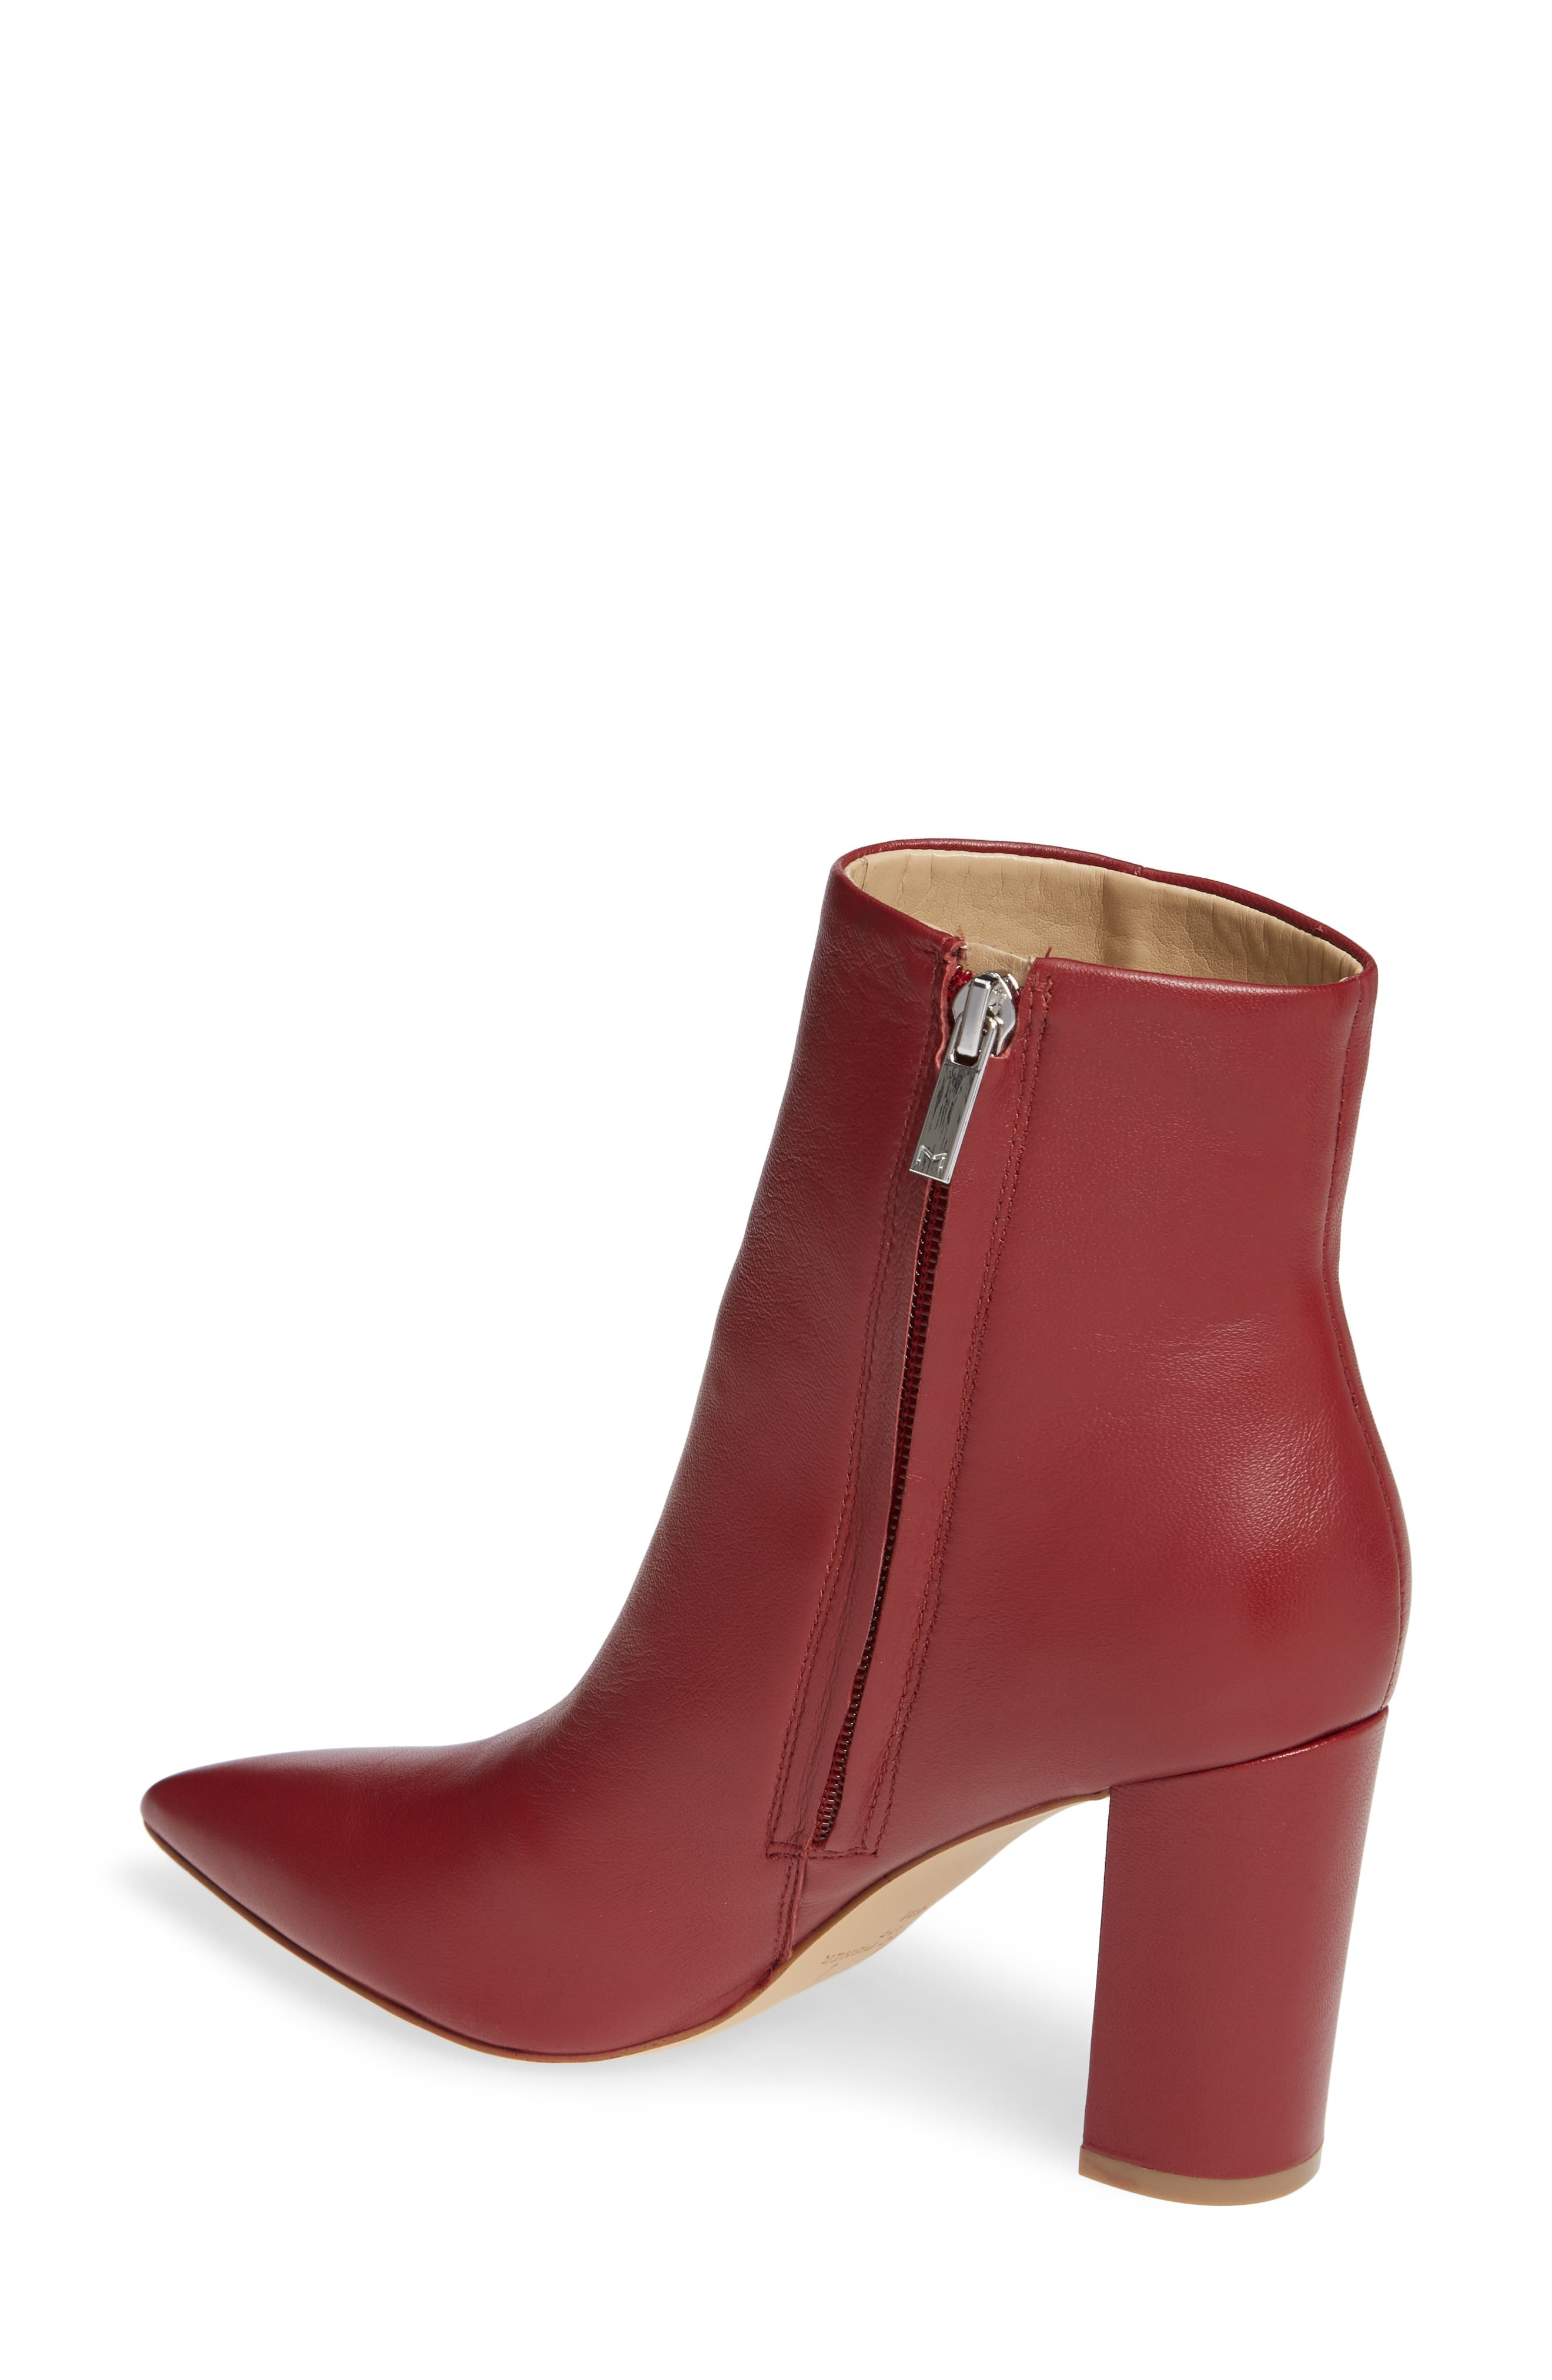 Ulani Pointy Toe Bootie,                             Alternate thumbnail 2, color,                             RED LEATHER